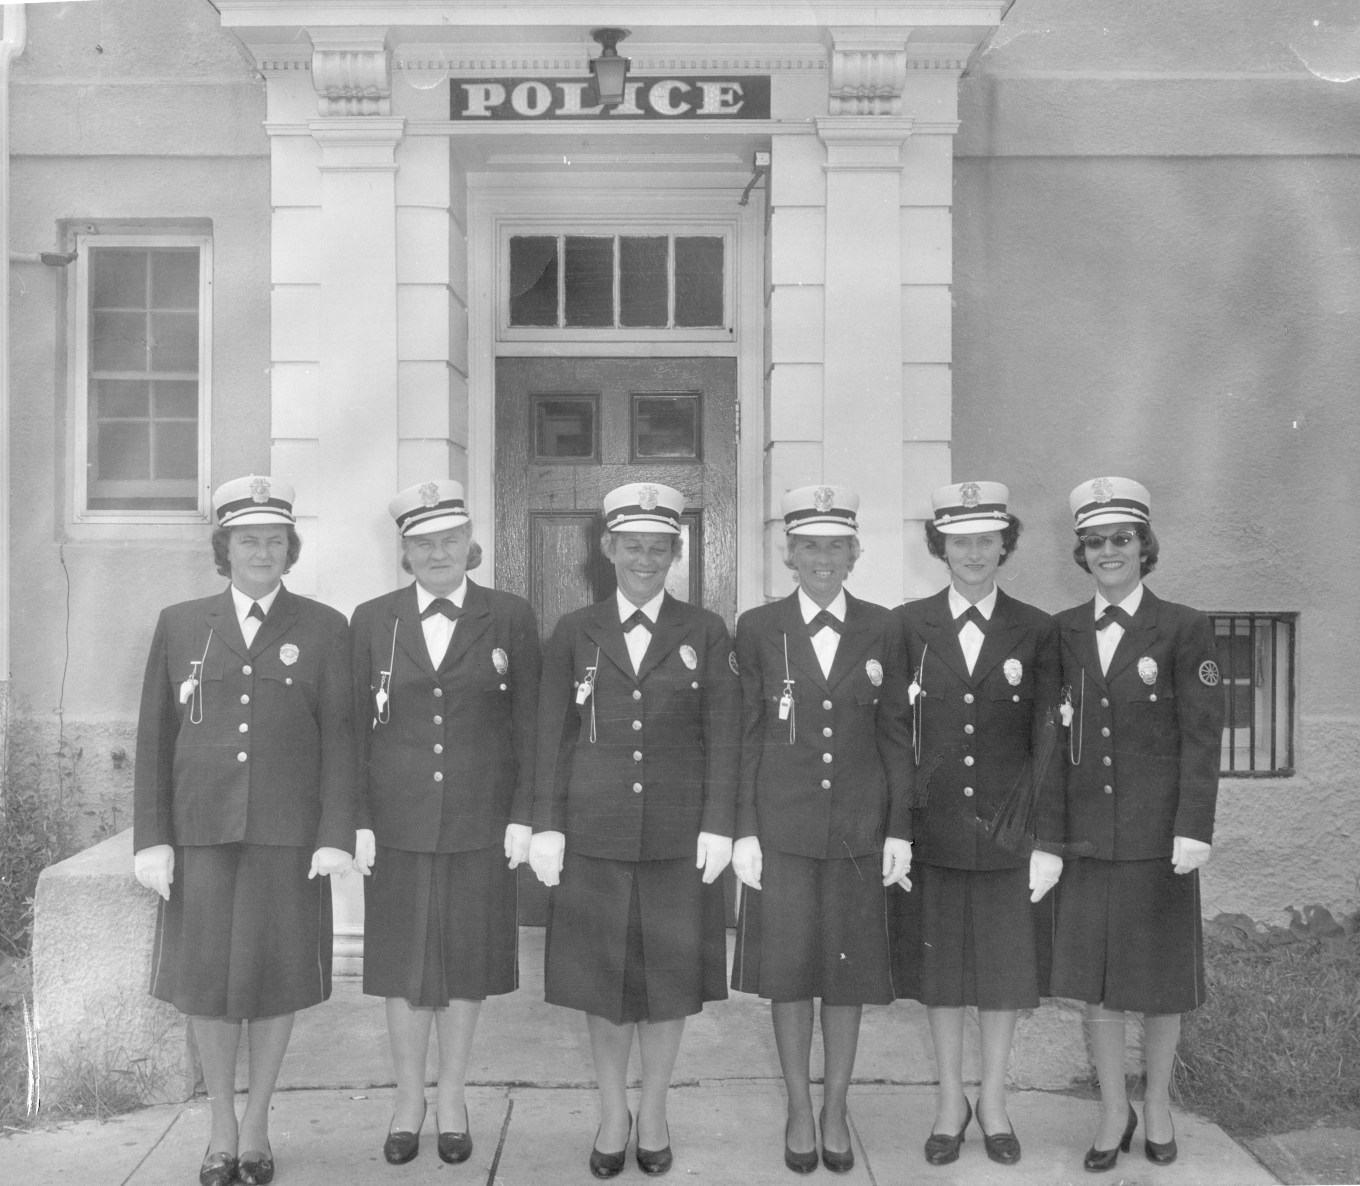 Burlington, MA police matrons, c. 1965. Photo credit: Maureen Putnam Paille.